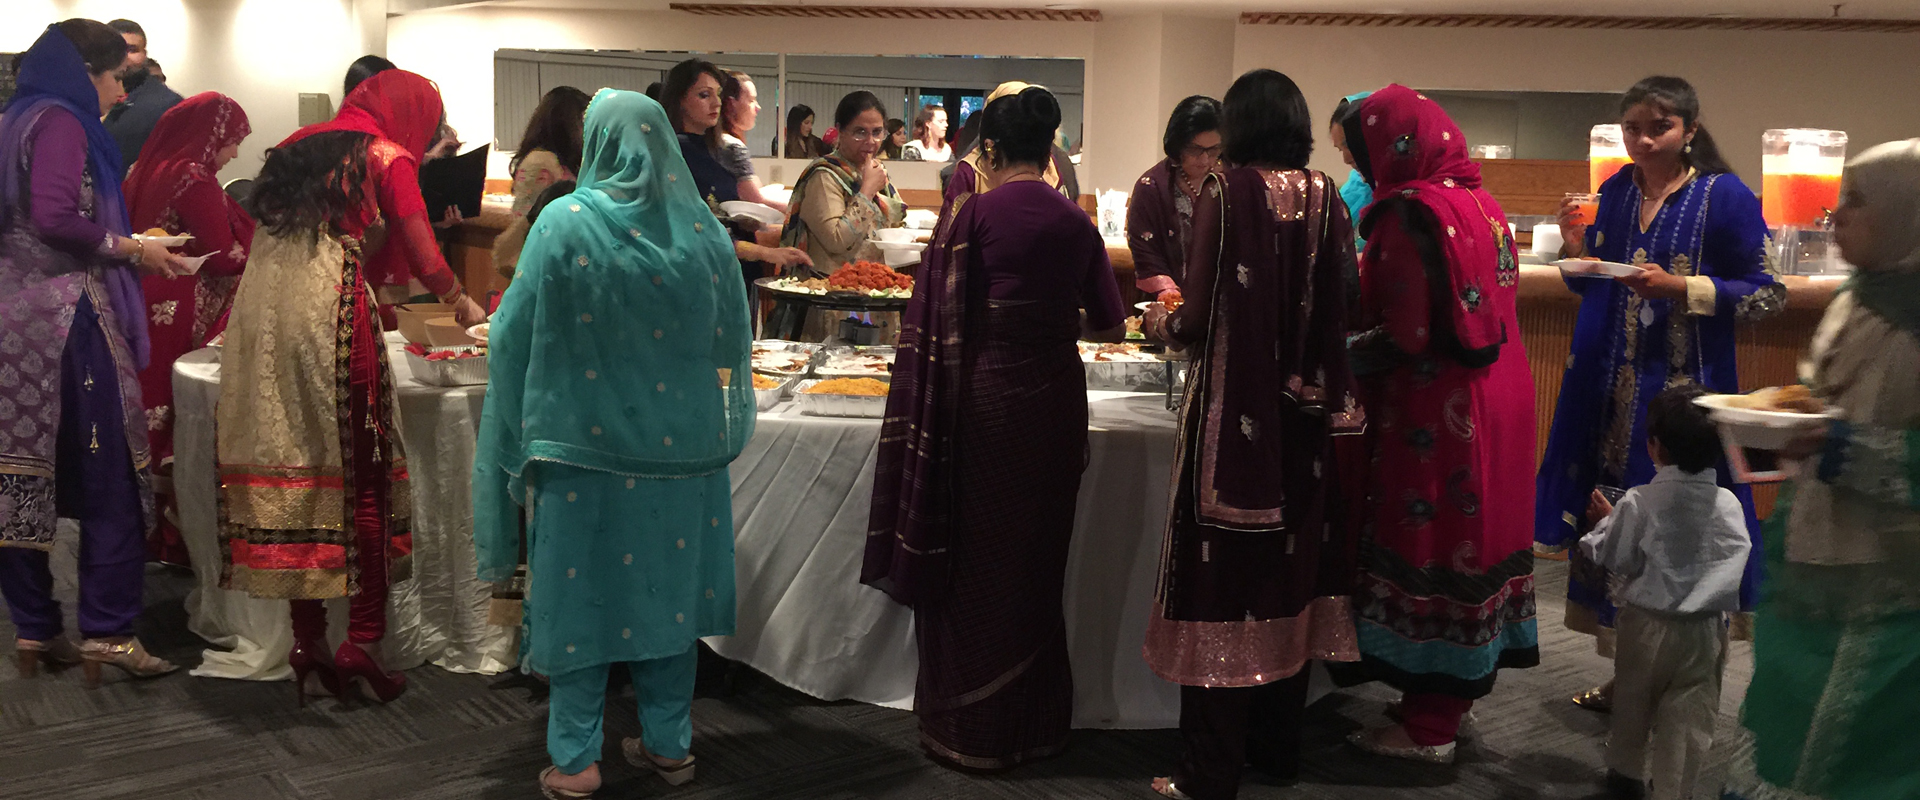 Jaipur Indian Cuisine Catering Guests